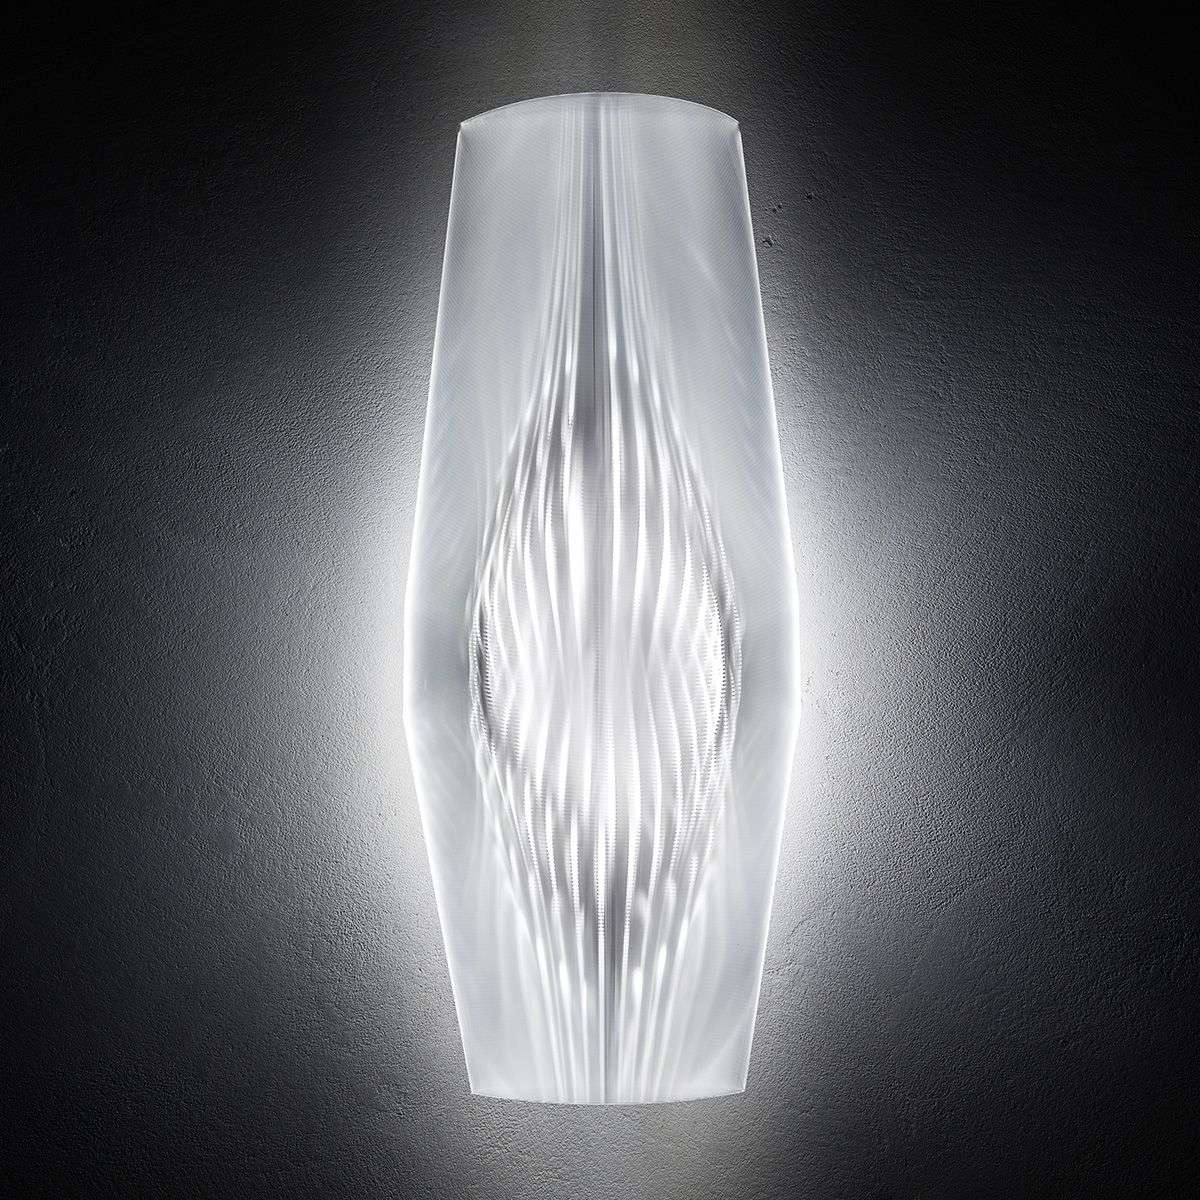 Applique de designer LED transparente Mirage-8503281-31